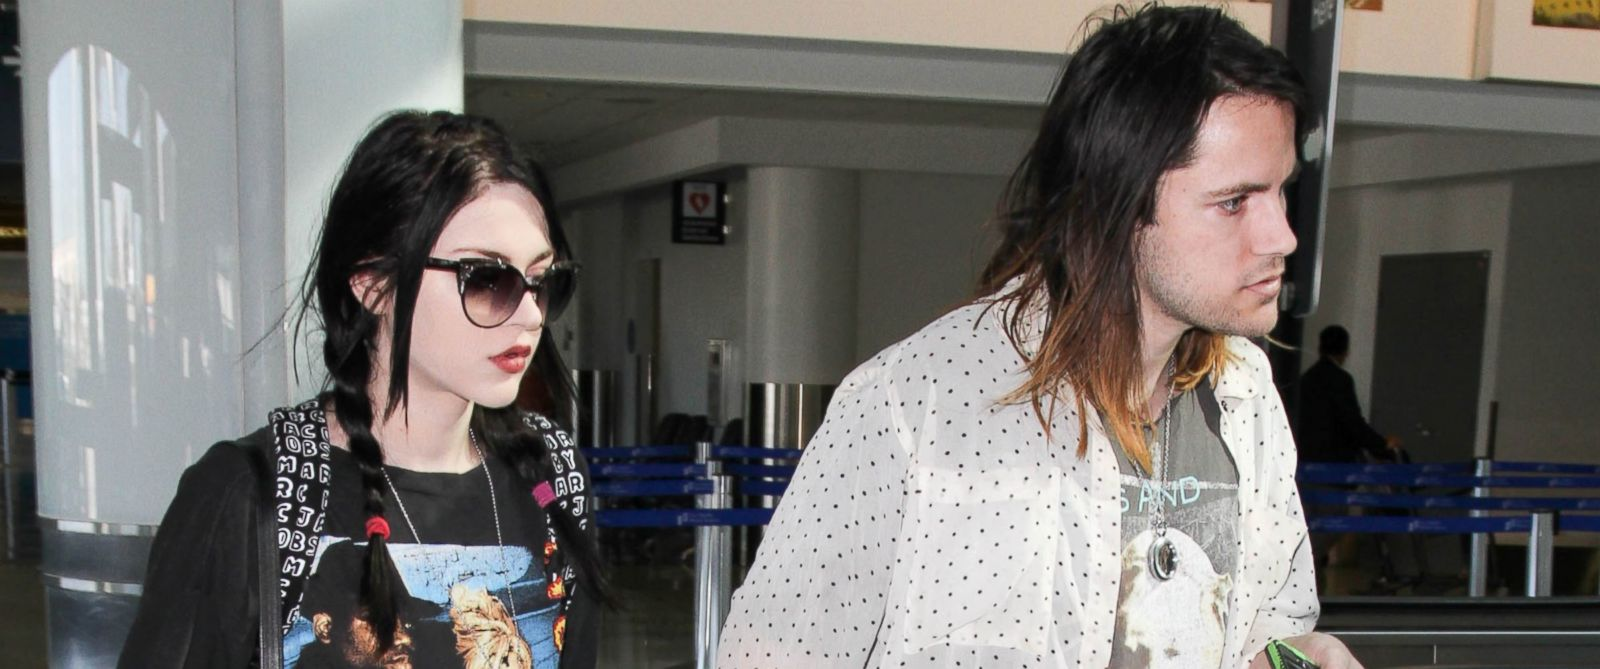 PHOTO: Frances Bean Cobain and Isaiah Silva at Los Angeles International Airport, Jan. 23, 2015, in Los Angeles.